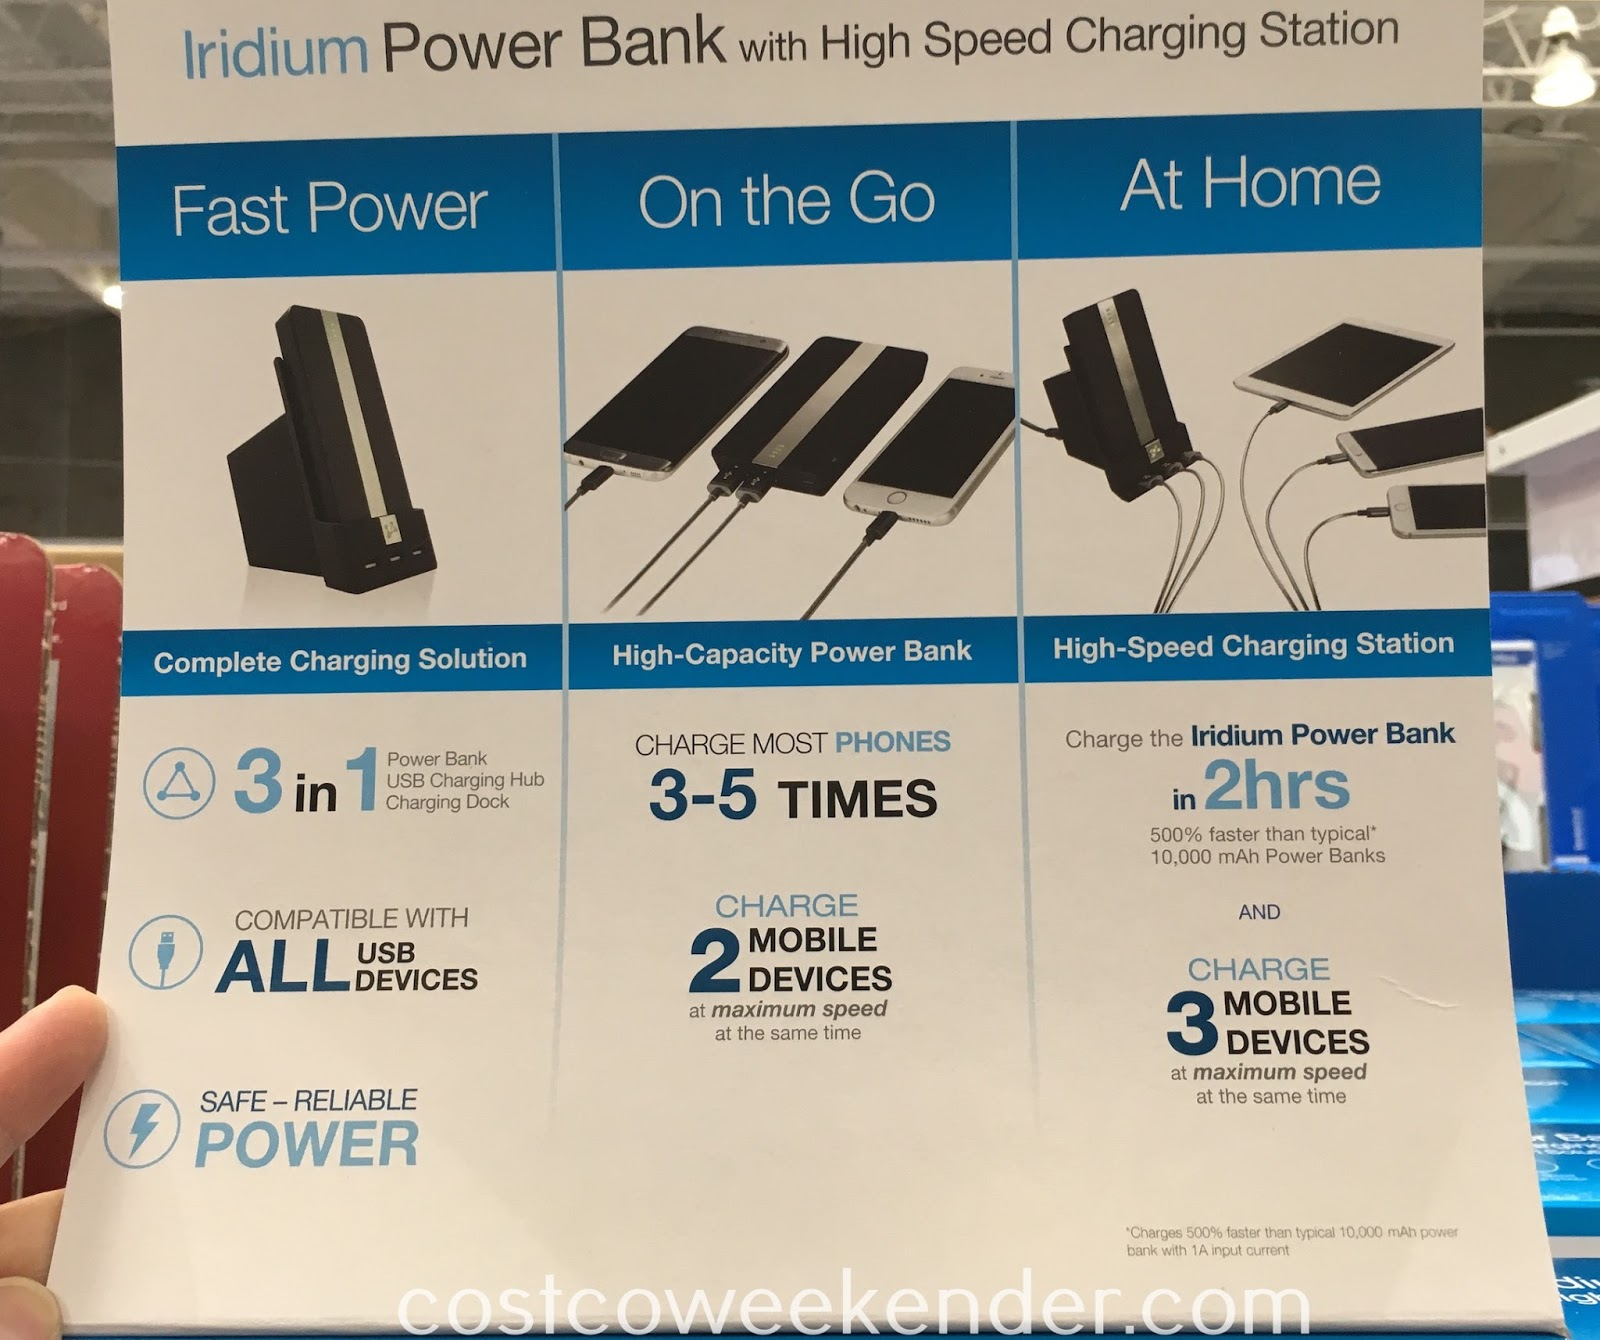 Costco 1095467 - Ubio Labs Iridium Power Bank with High Speed Charging Station - capable of charging multiple devices